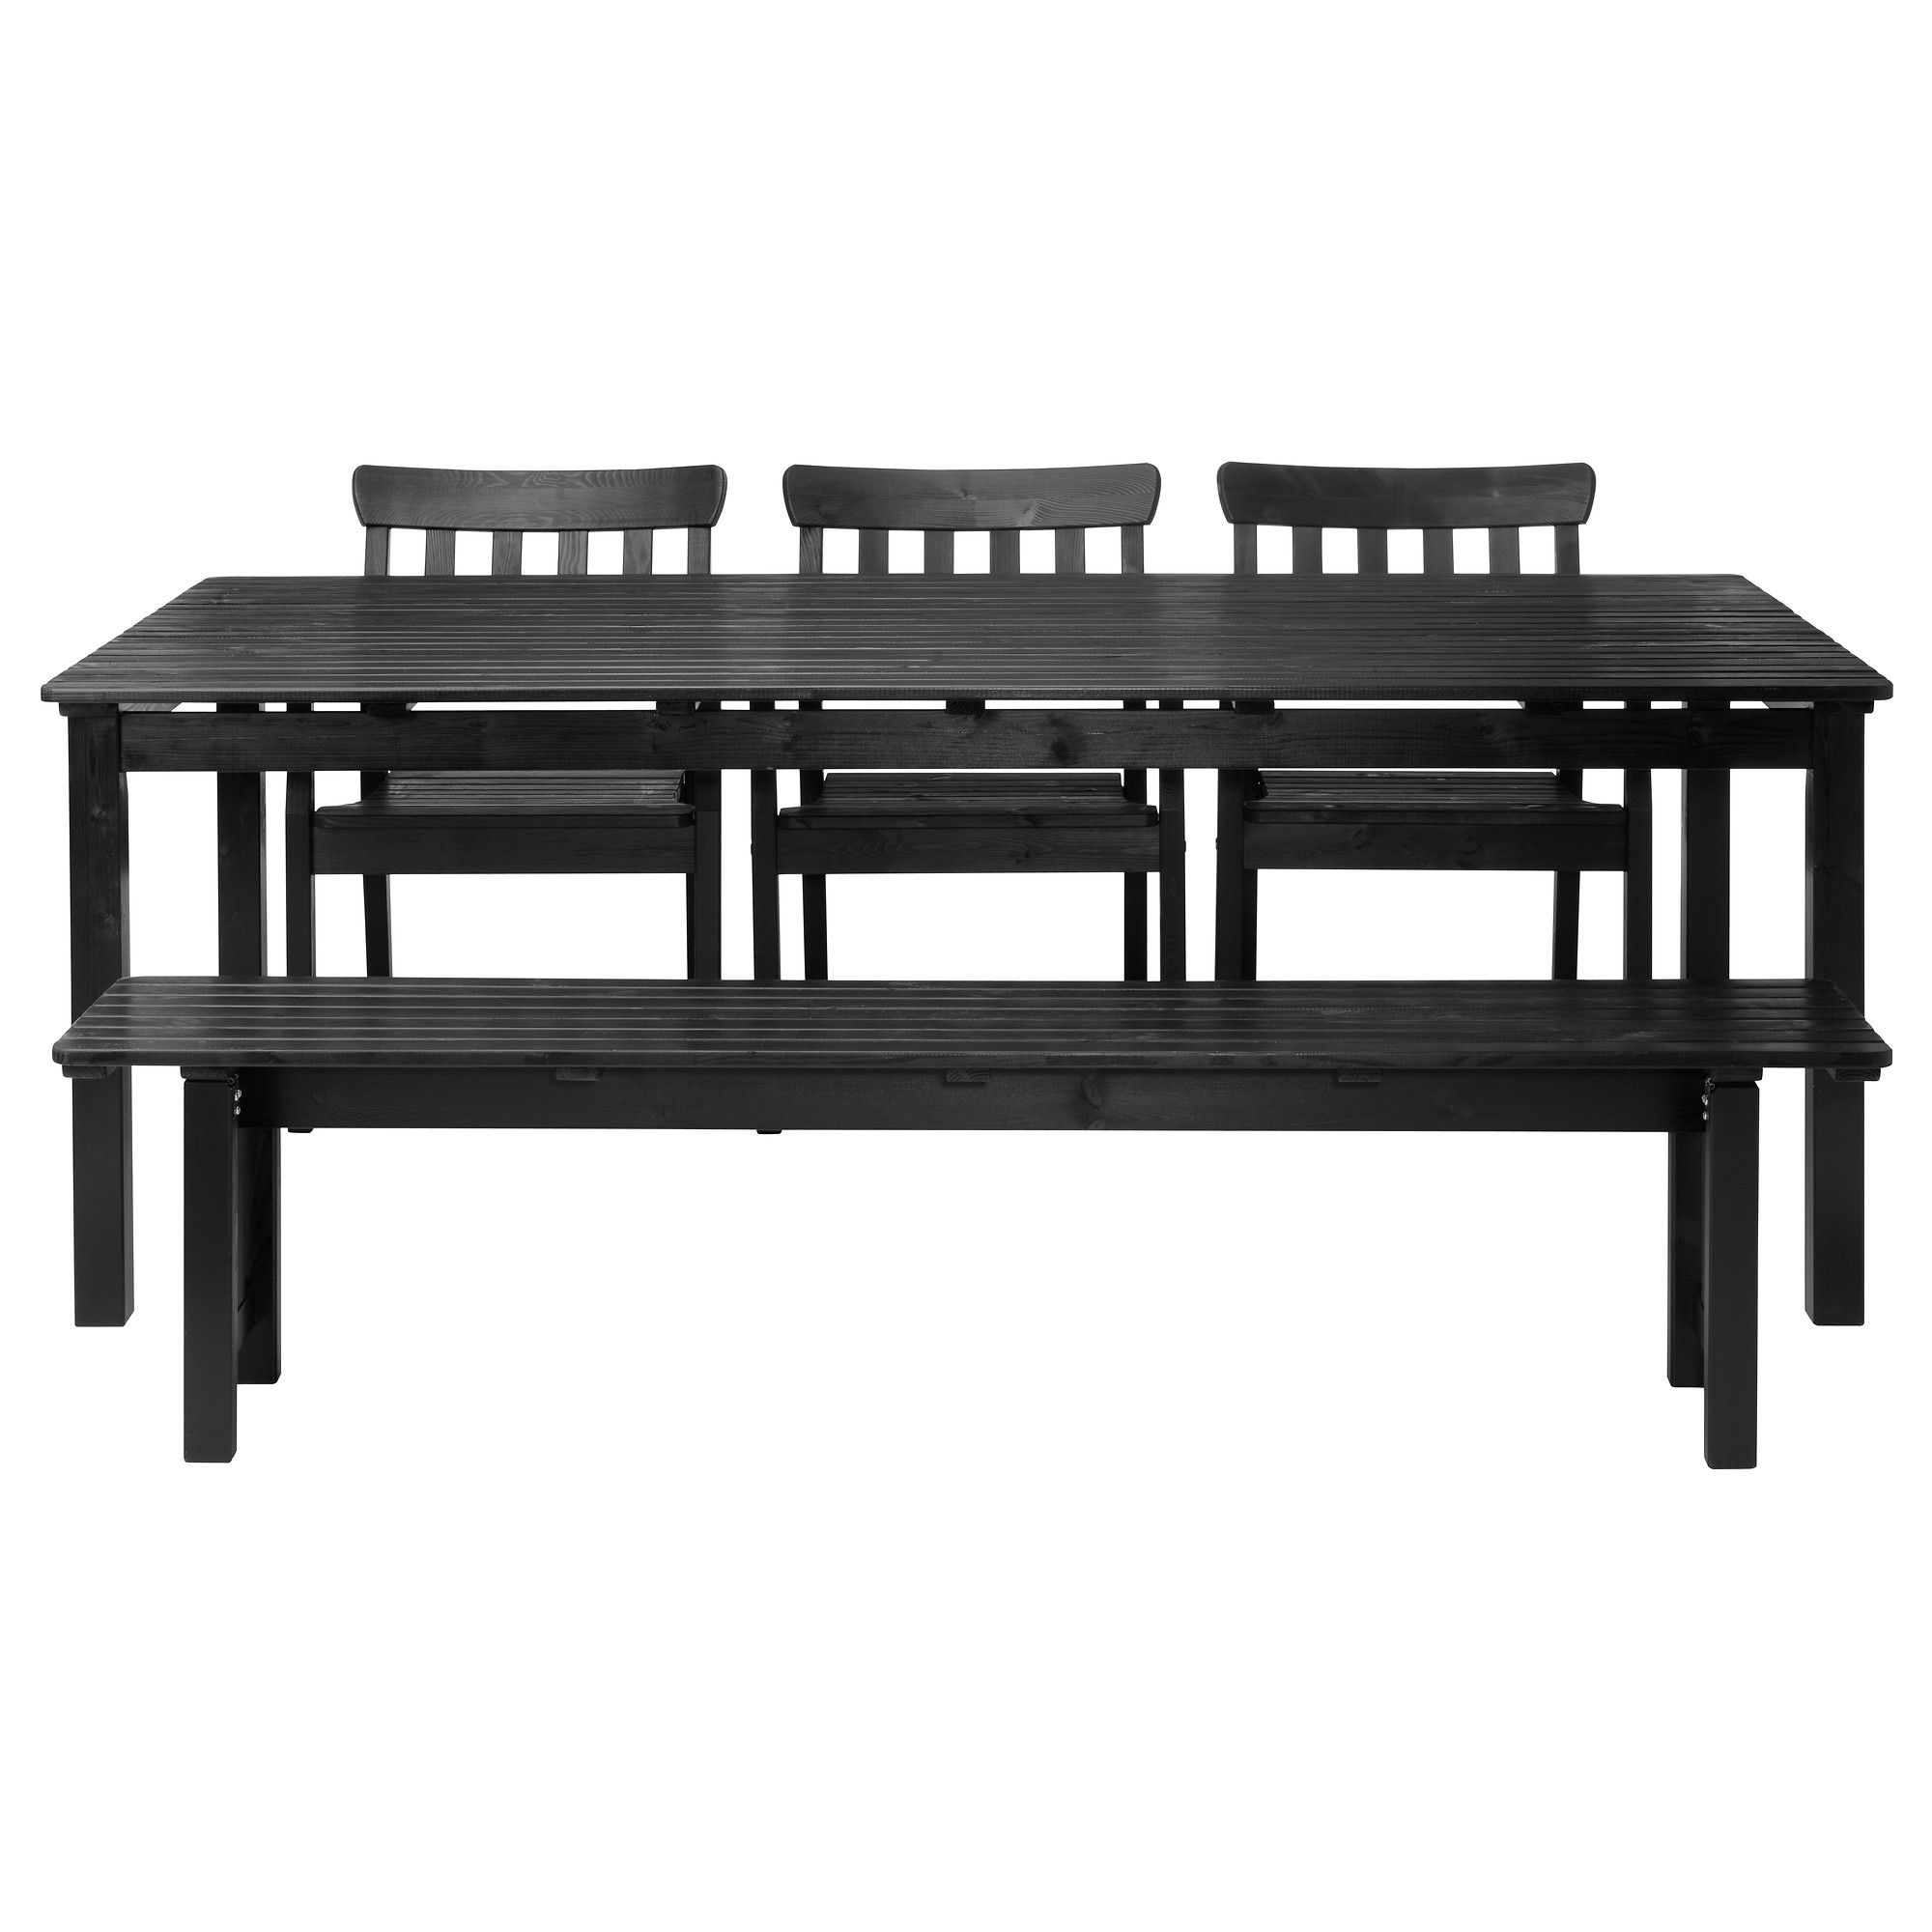 Angso Table Banc Et 3 Chaises Brun Noir Ikea Summer In